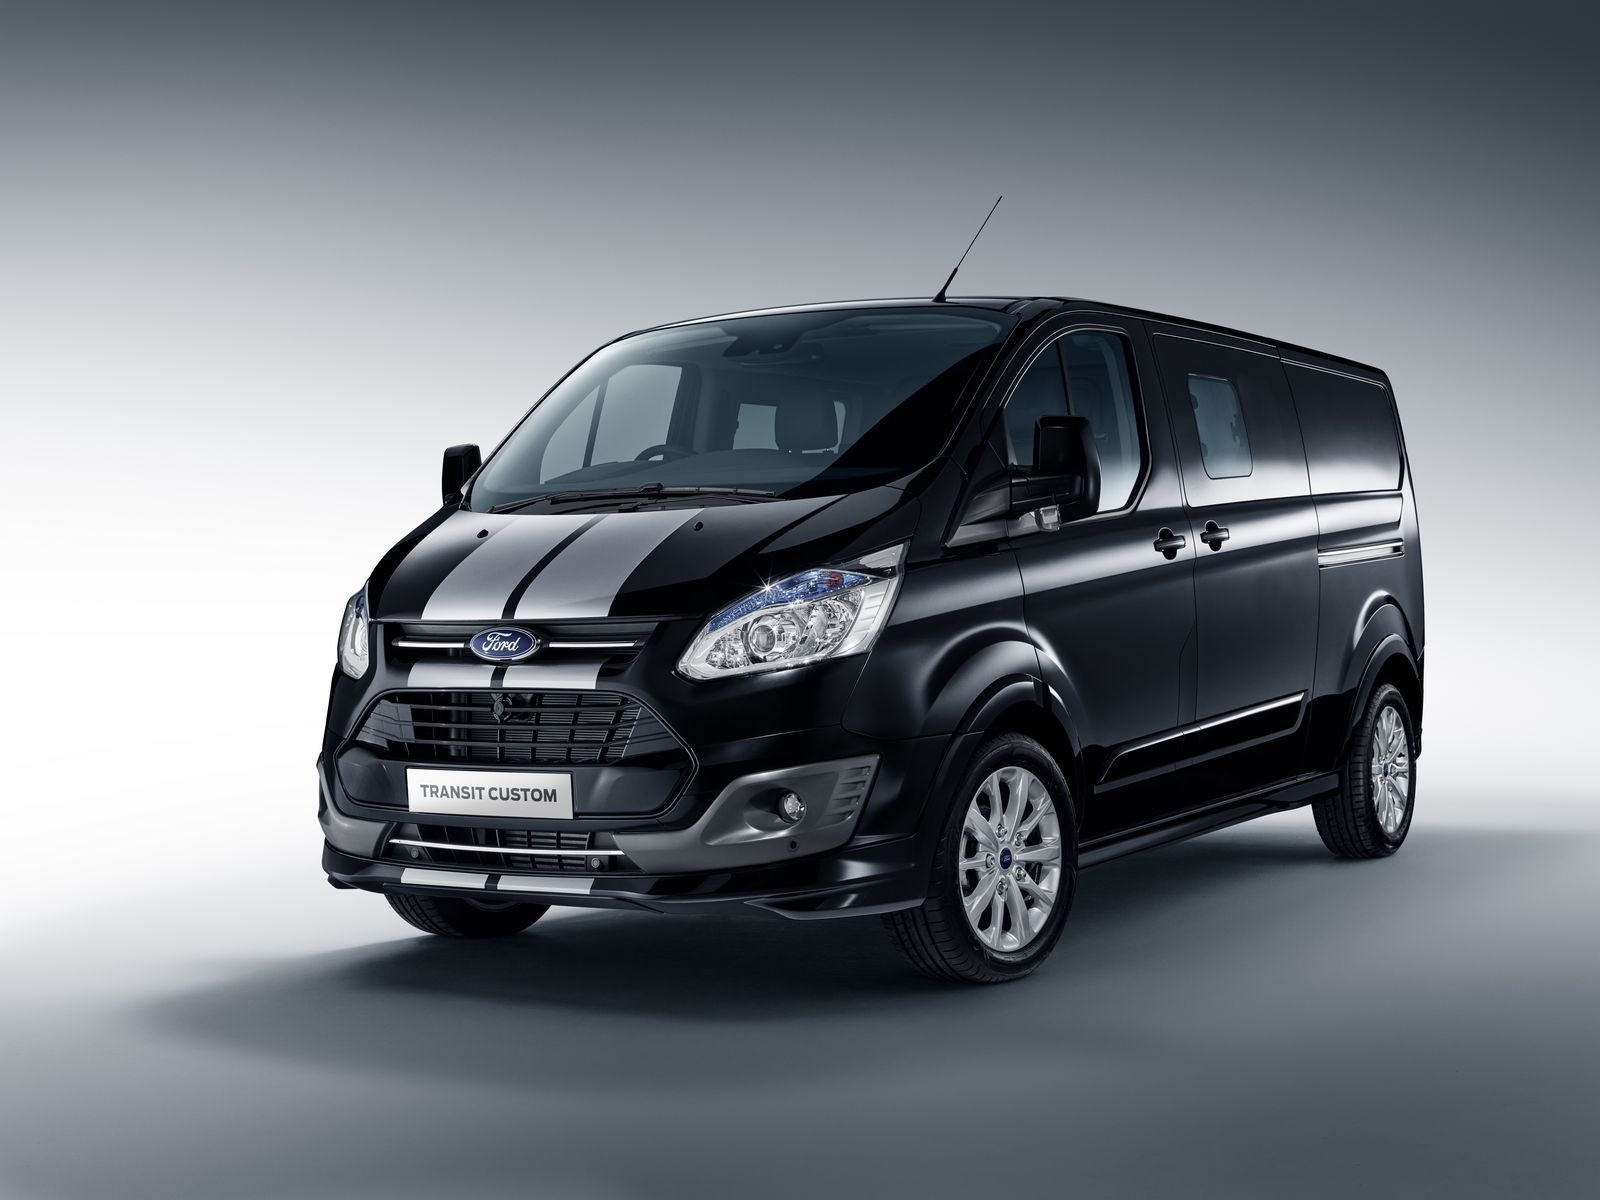 ford adds more appeal to transit with custom color and. Black Bedroom Furniture Sets. Home Design Ideas